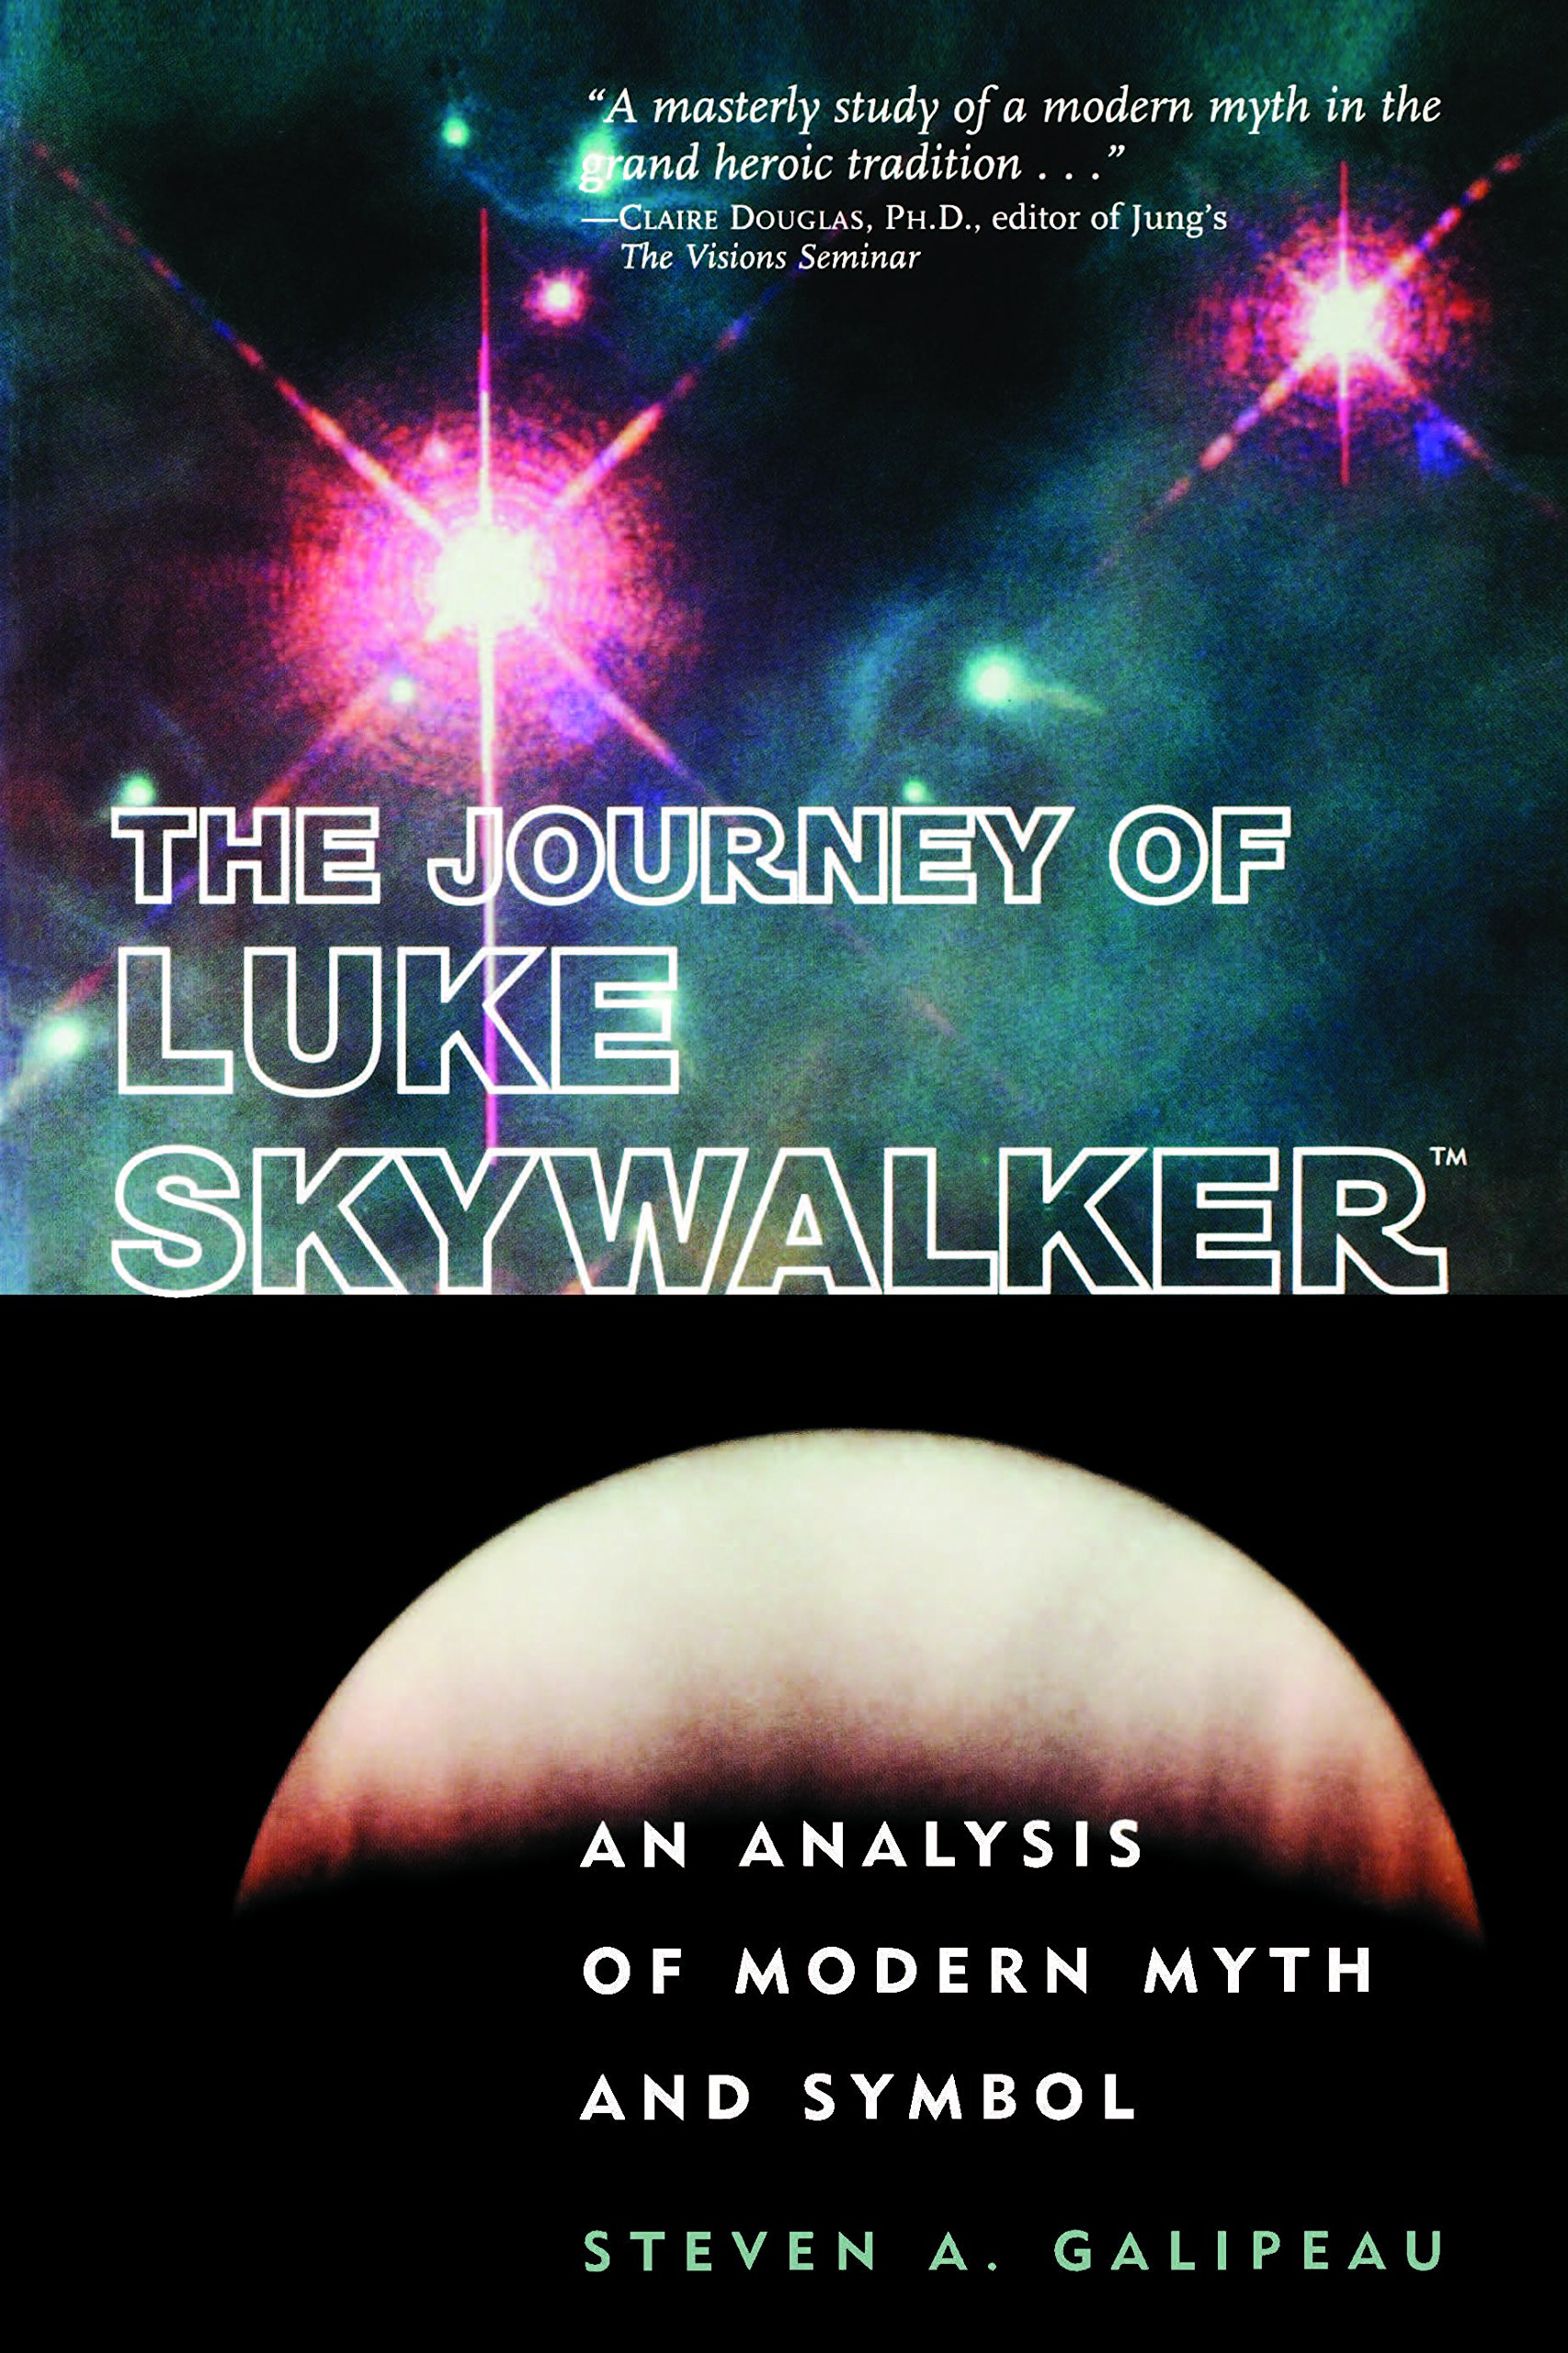 The Journey of Luke Skywalker